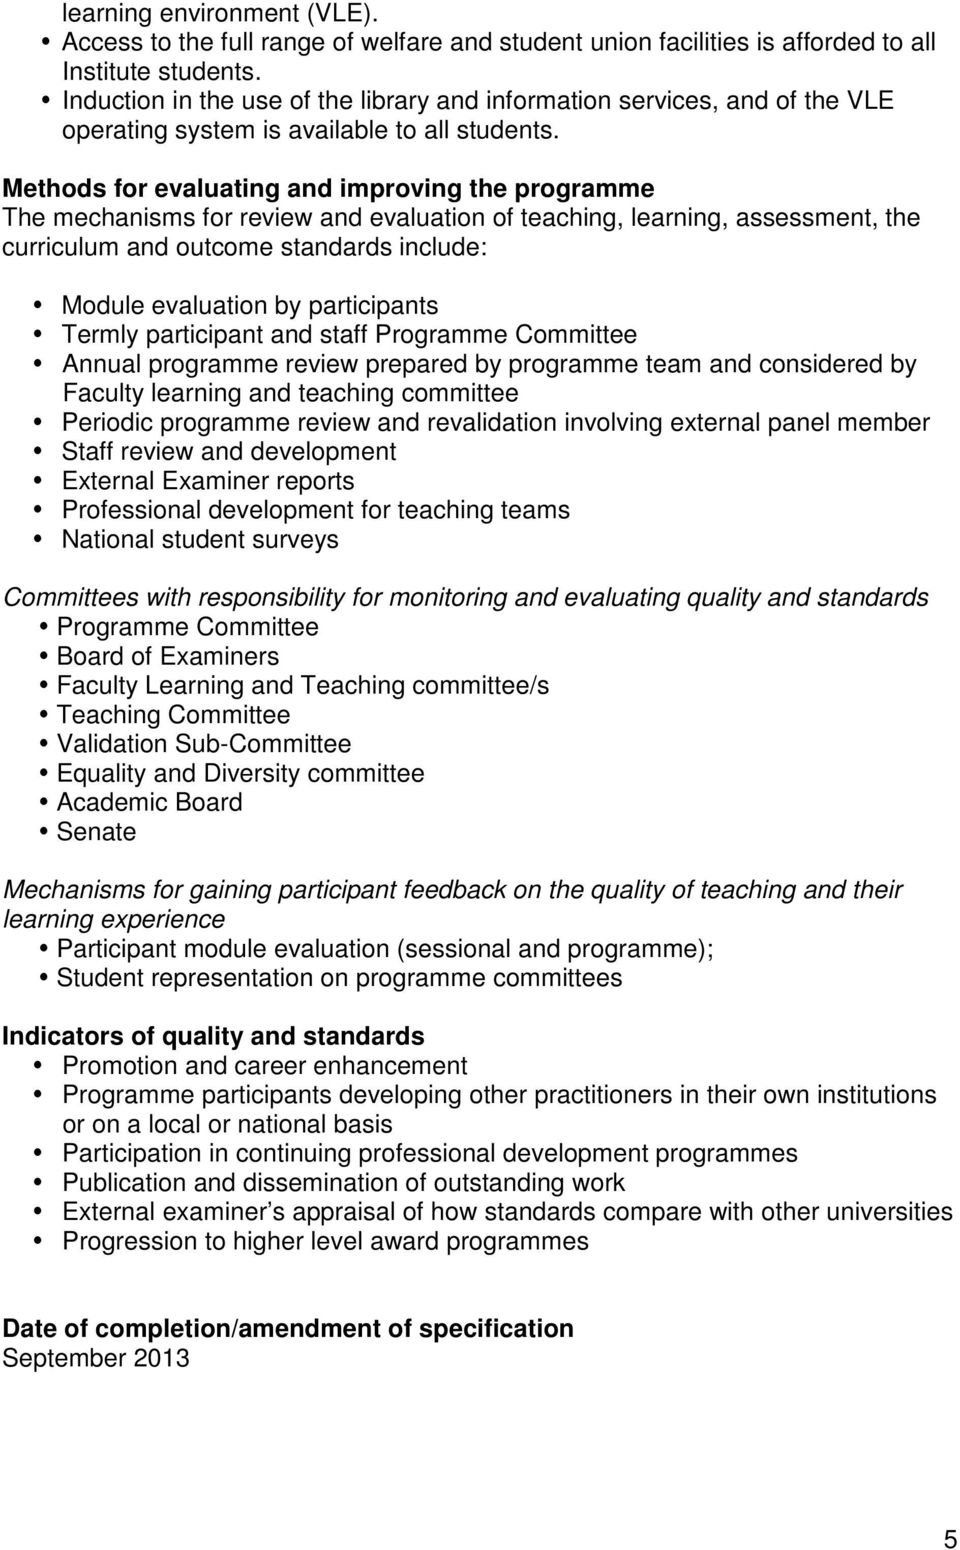 Methods for evaluating and improving the programme The mechanisms for review and evaluation of teaching, learning, assessment, the curriculum and outcome standards include: Module evaluation by